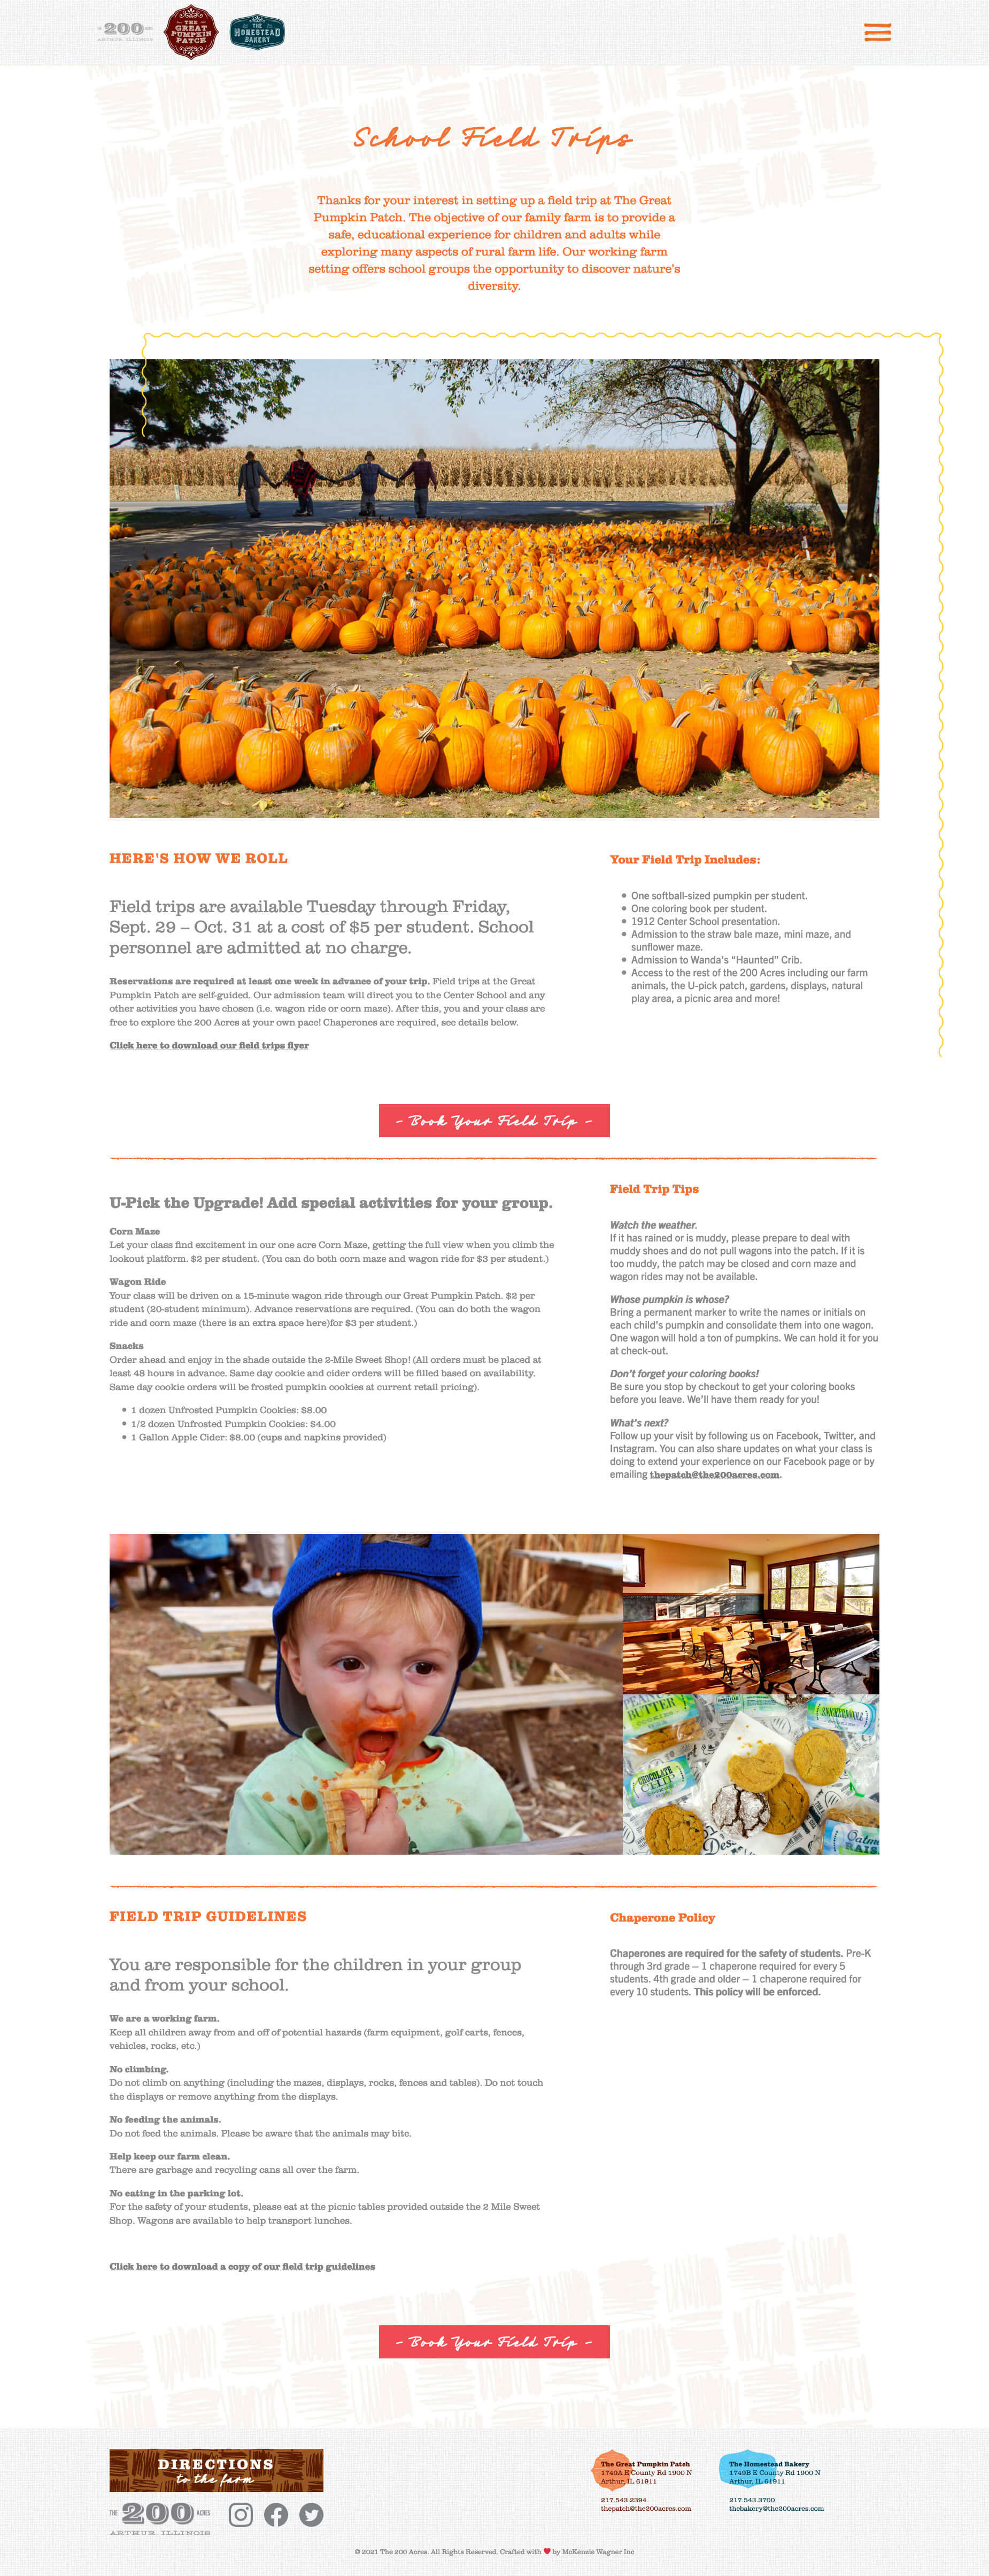 The 200 Acres - The Great Pumpkin Patch - The Homestead Bakery Website